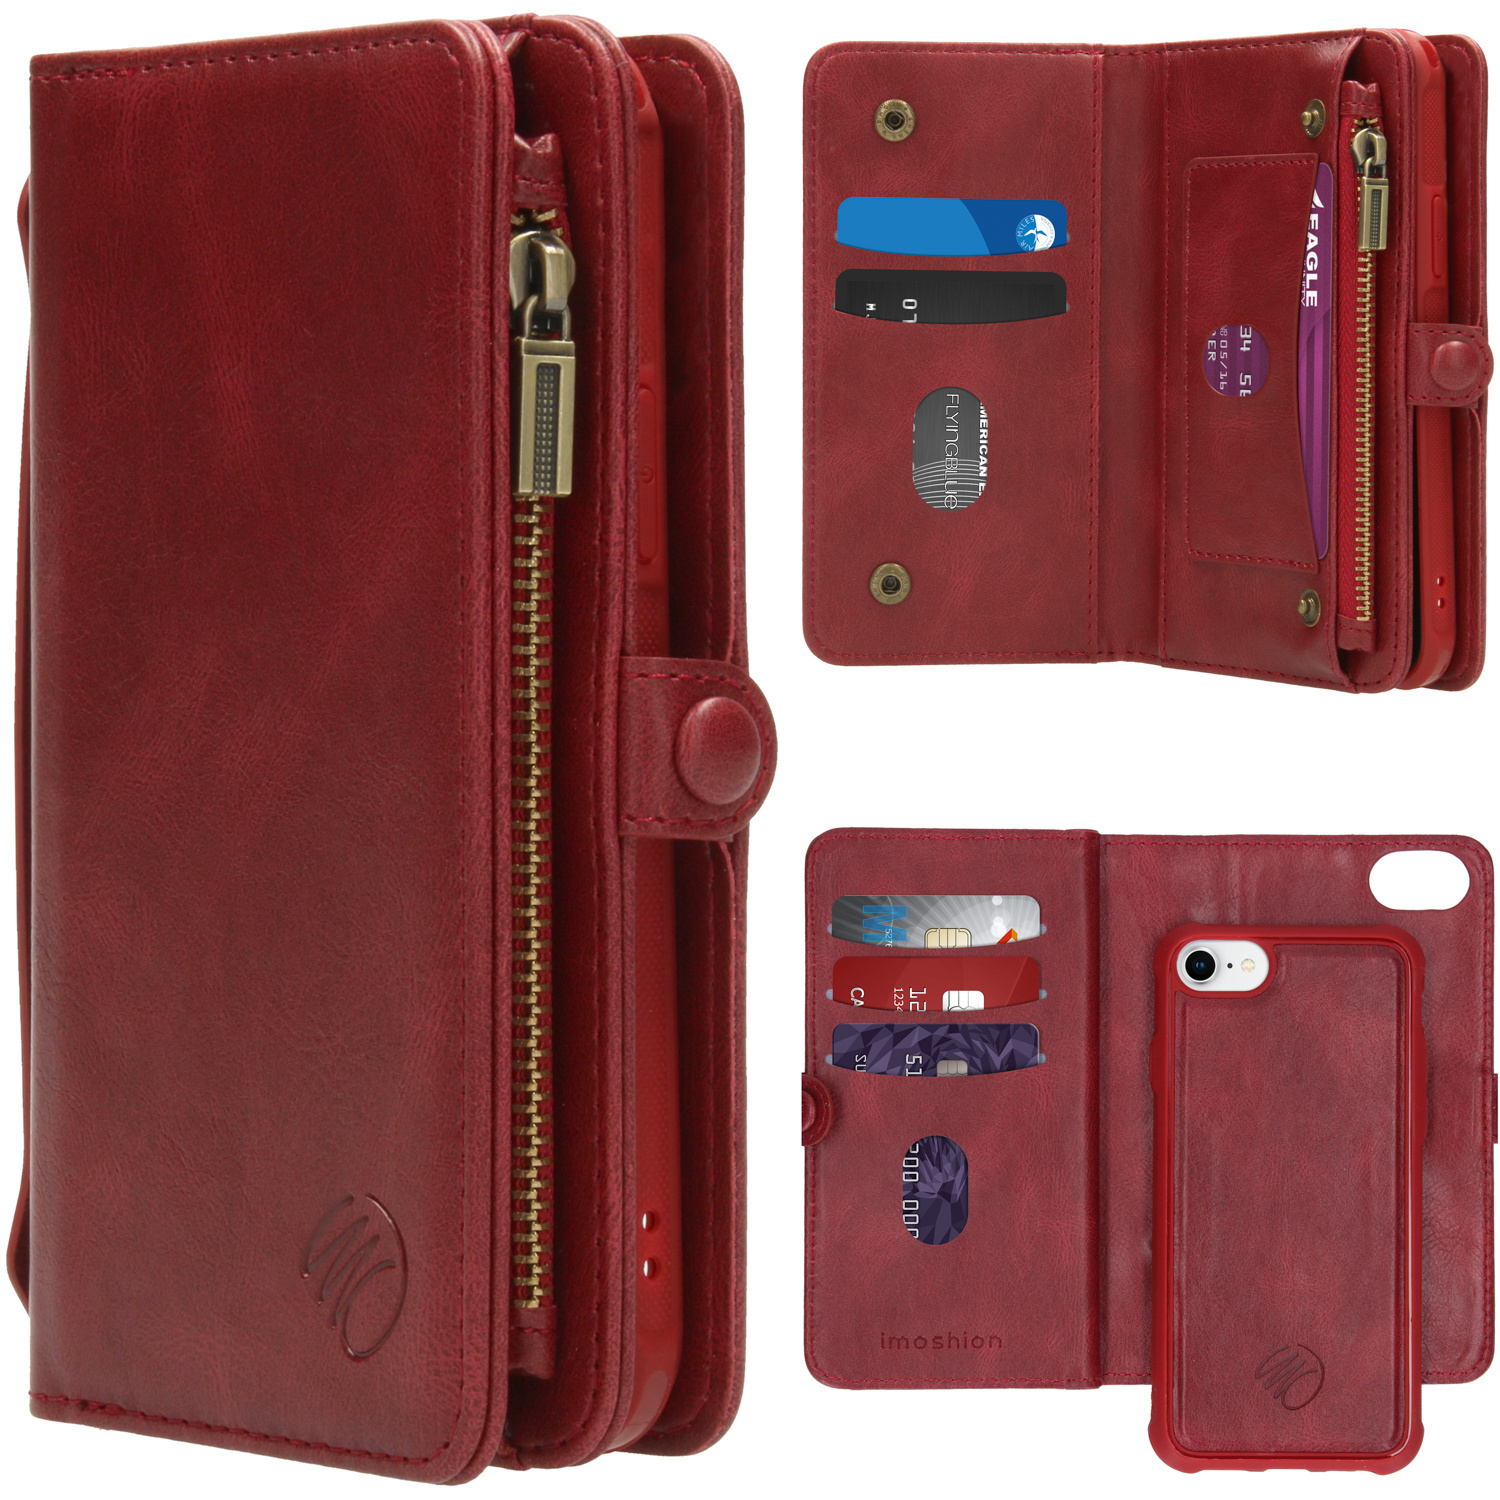 iMoshion 2-in-1 Booktype iPhone SE (2020) / 8 / 7 / 6(s) - Rood